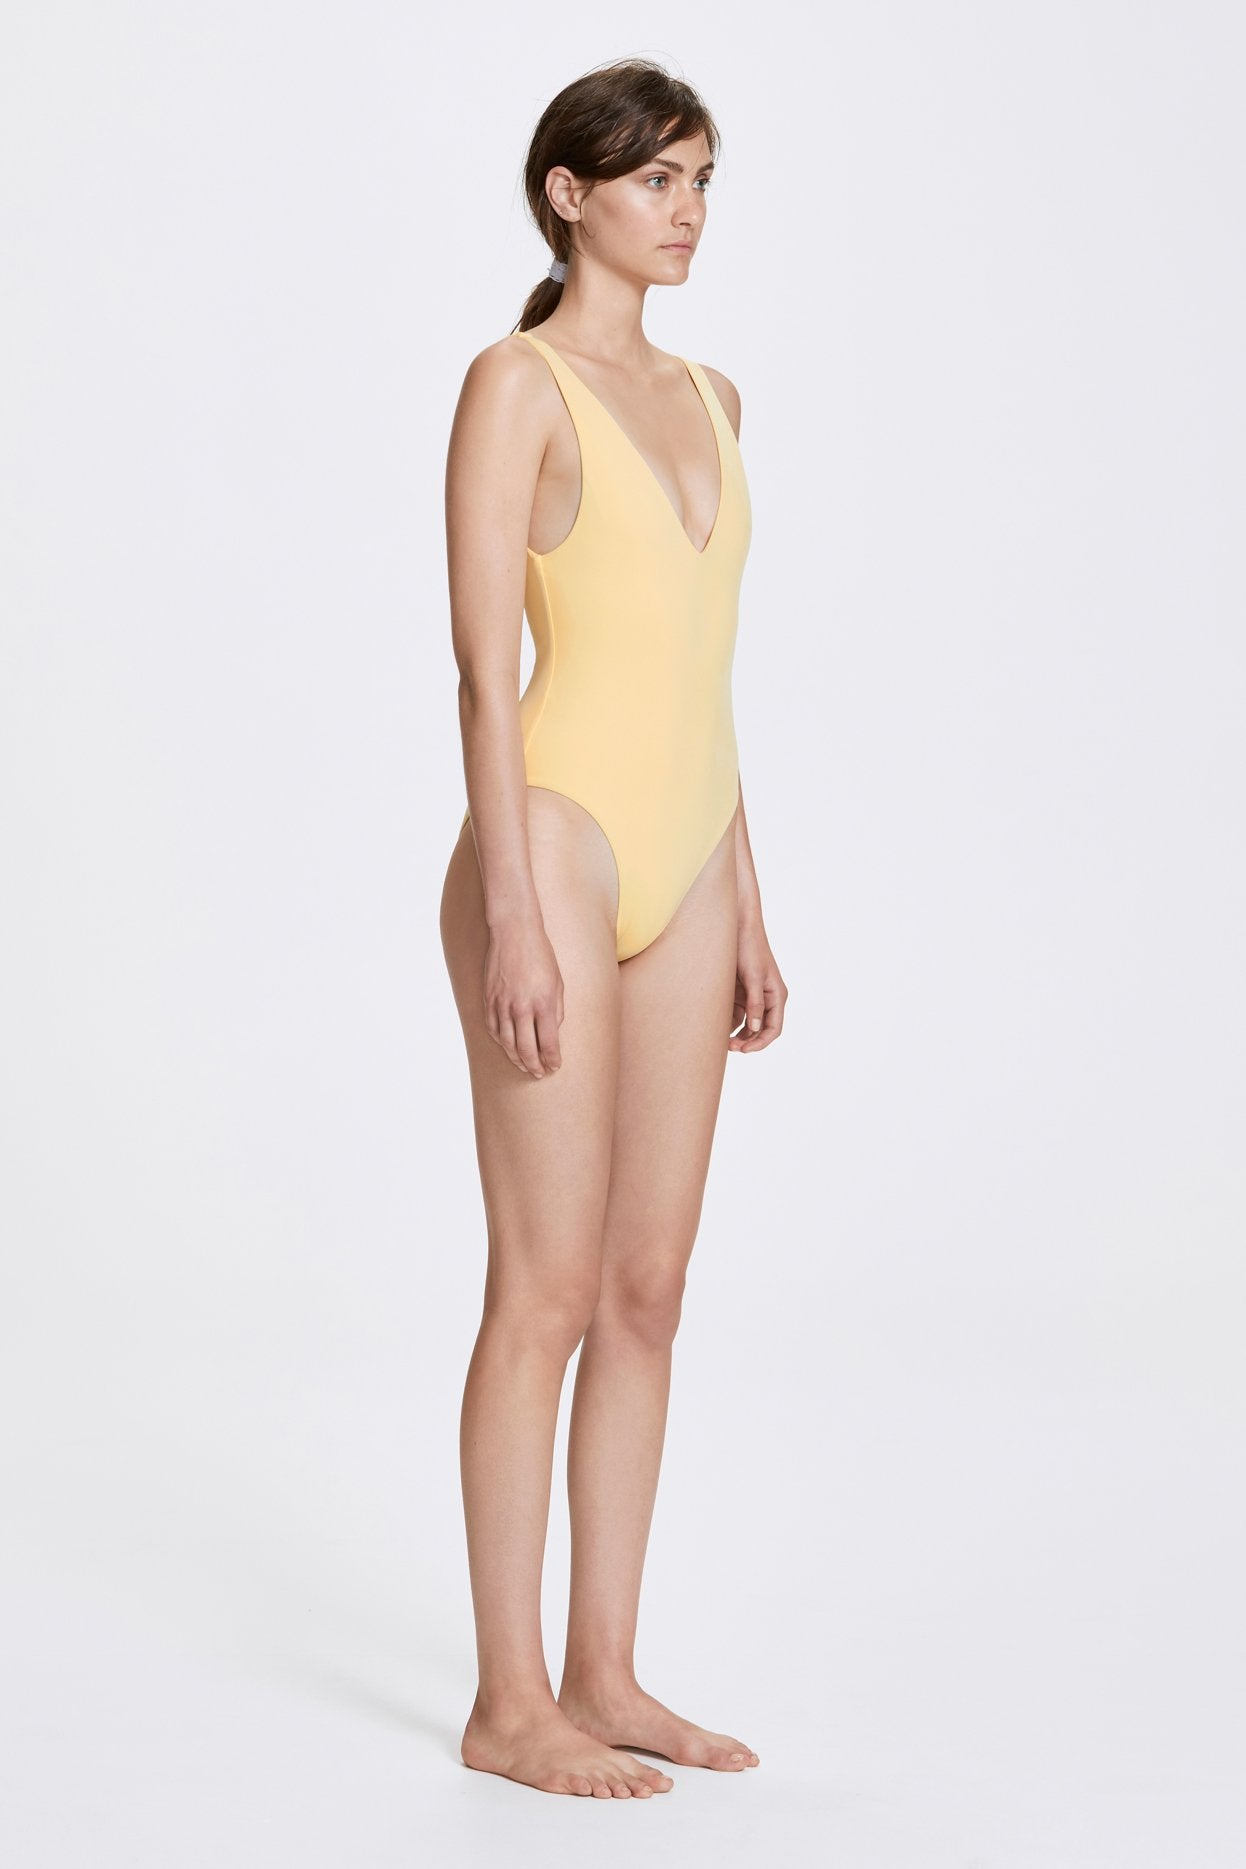 Her Line Ester Swimwear One Piece Butter Yellow Side